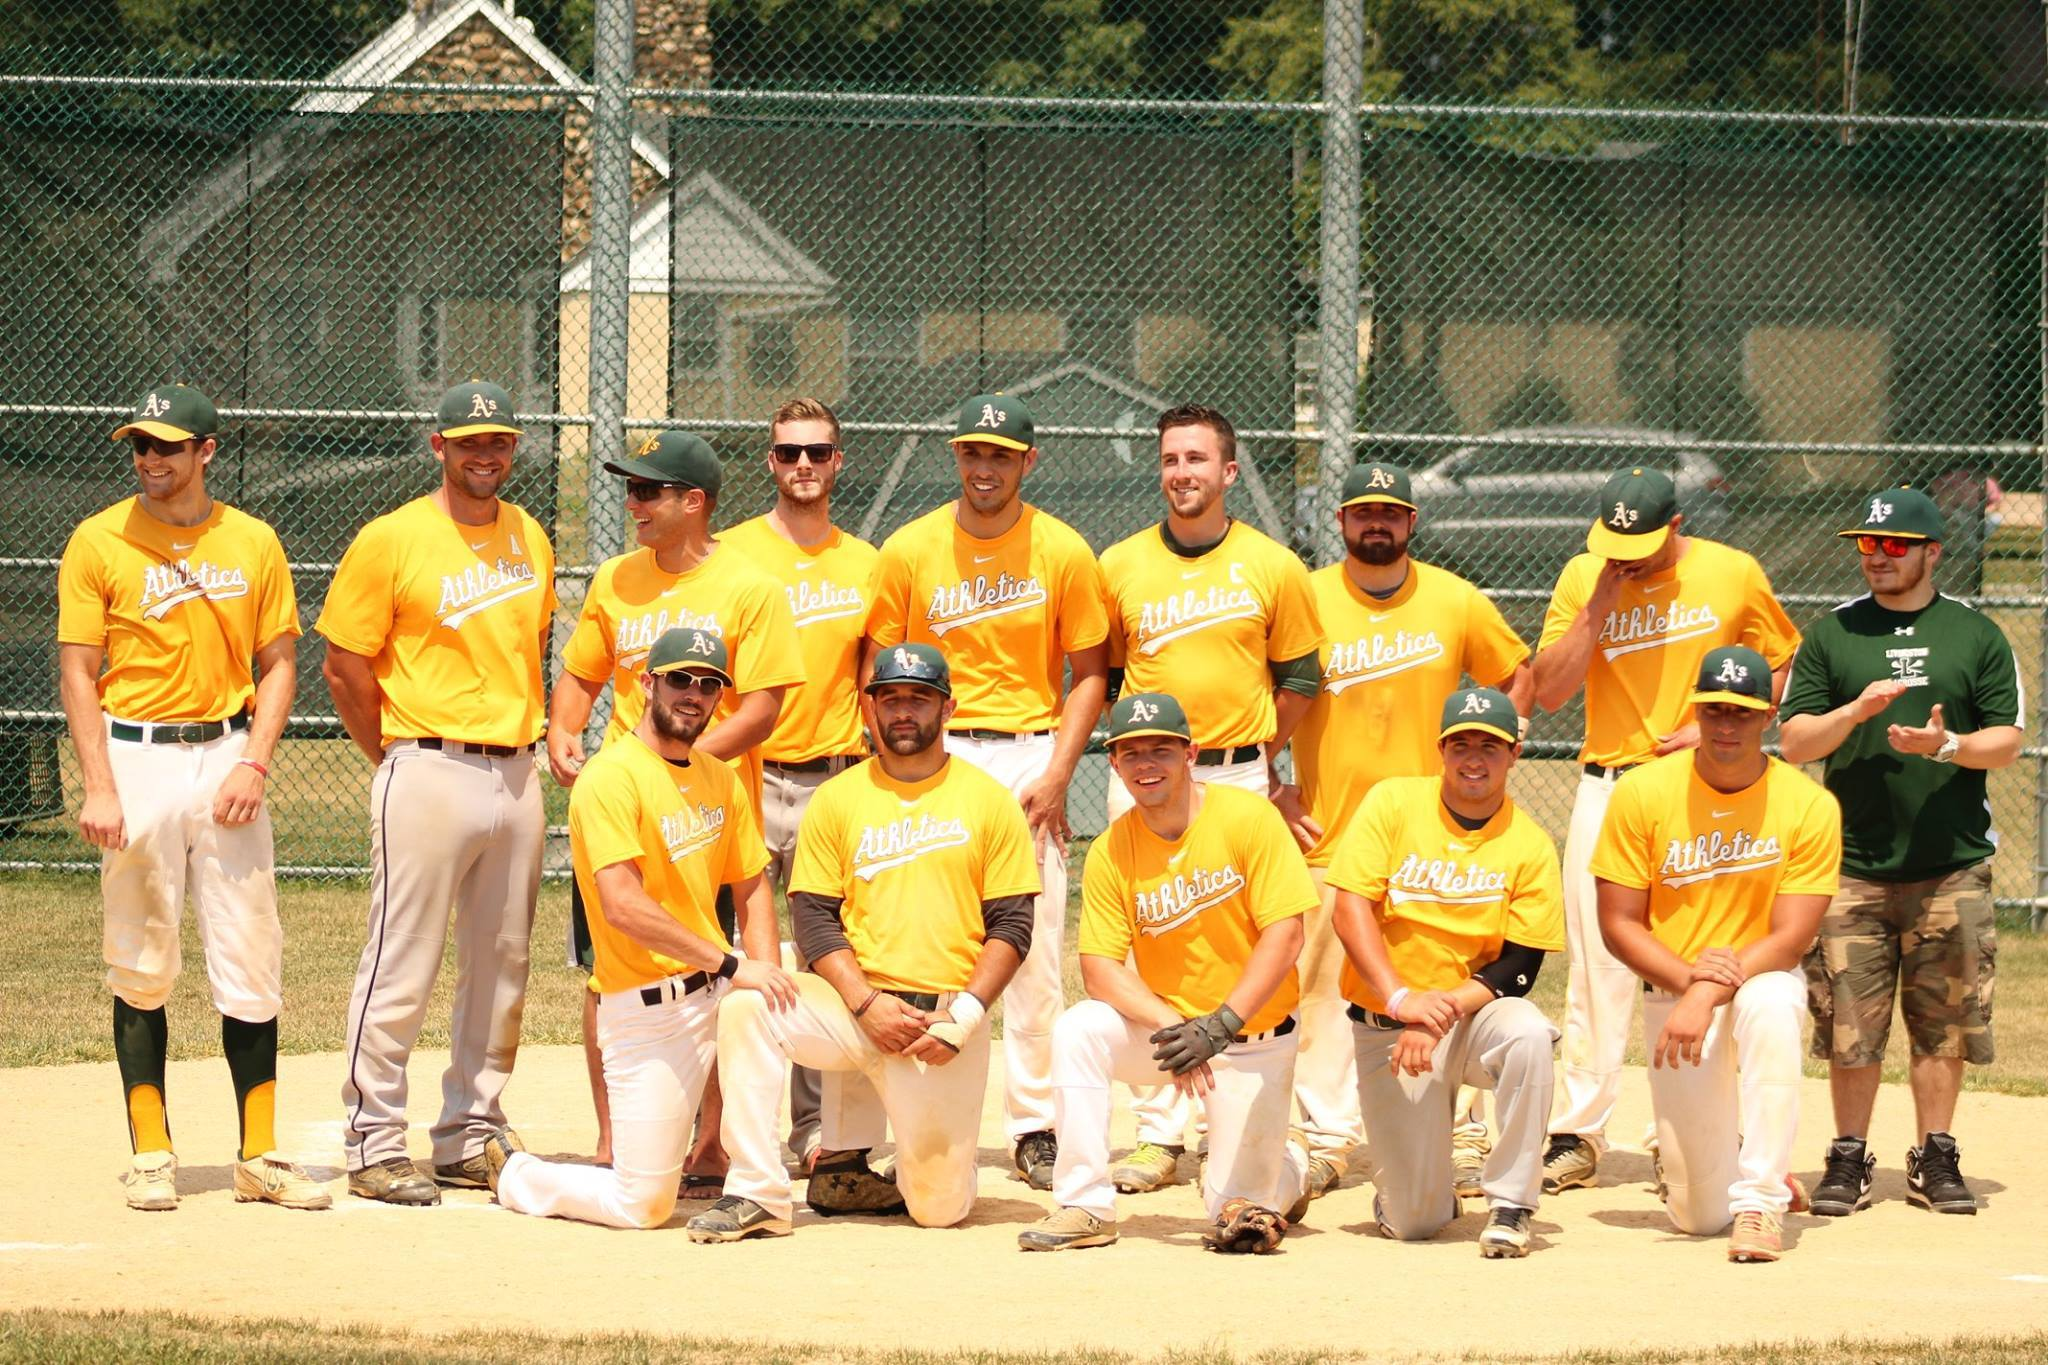 Amateur baseball jersey league north